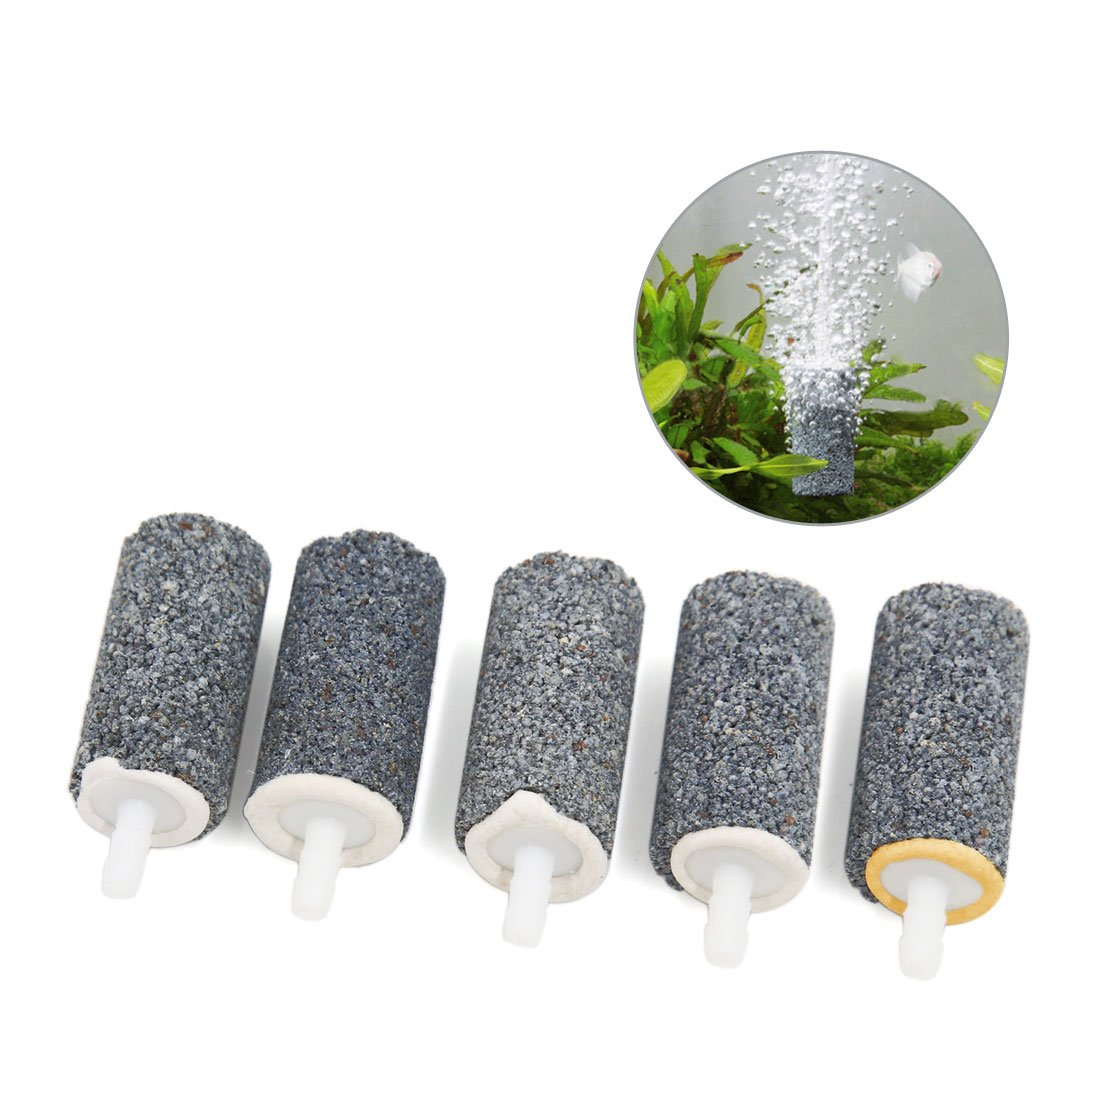 Air stone bubble diffusers with various shapes